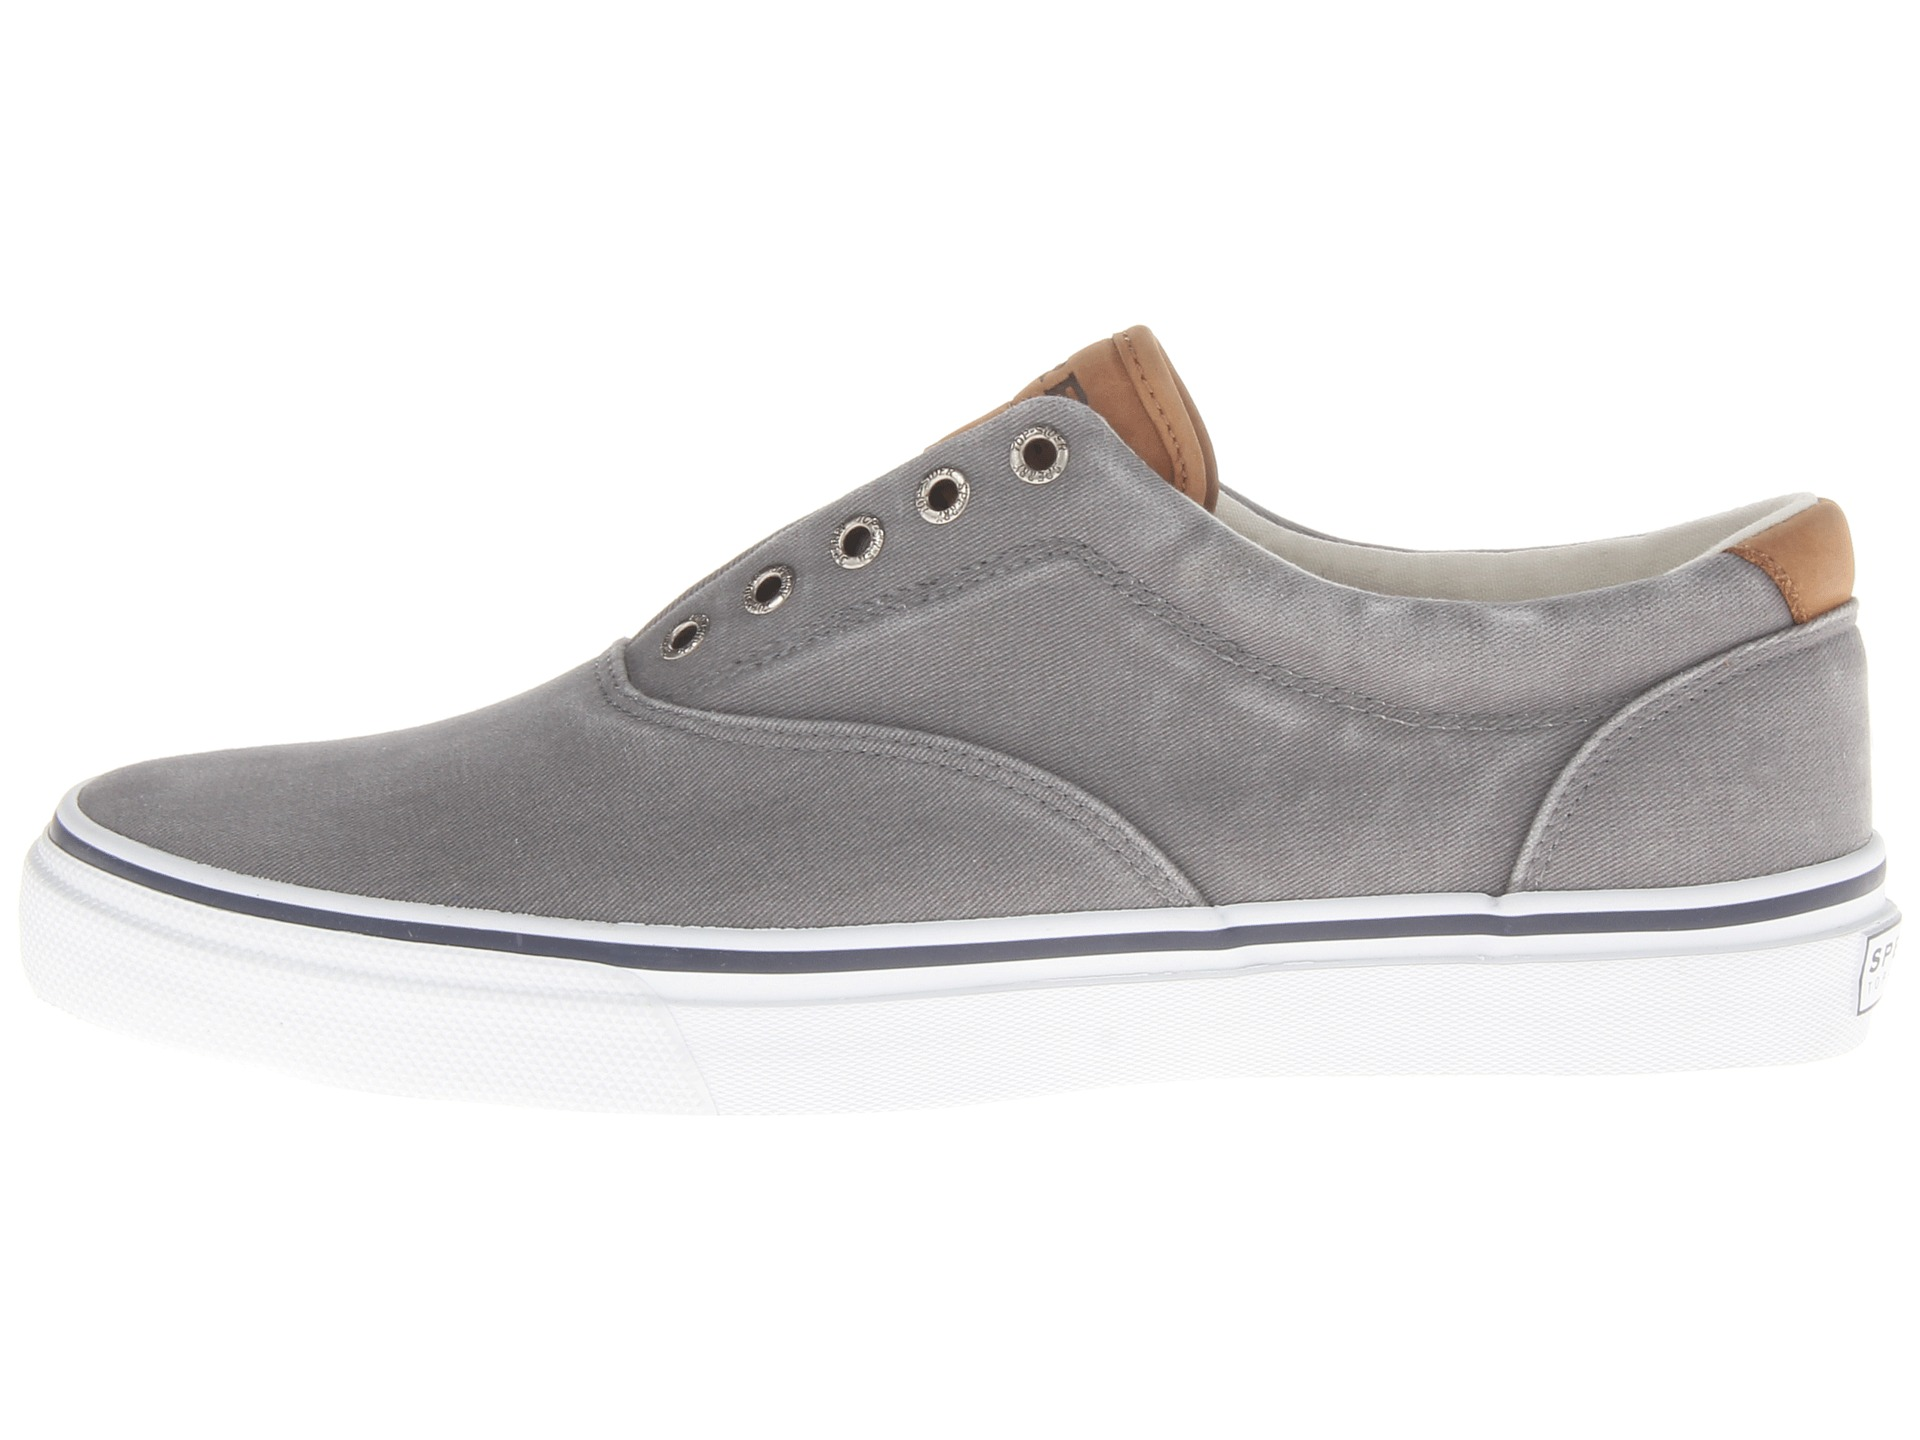 How To Clean Sperry Top Sider Canvas Shoes